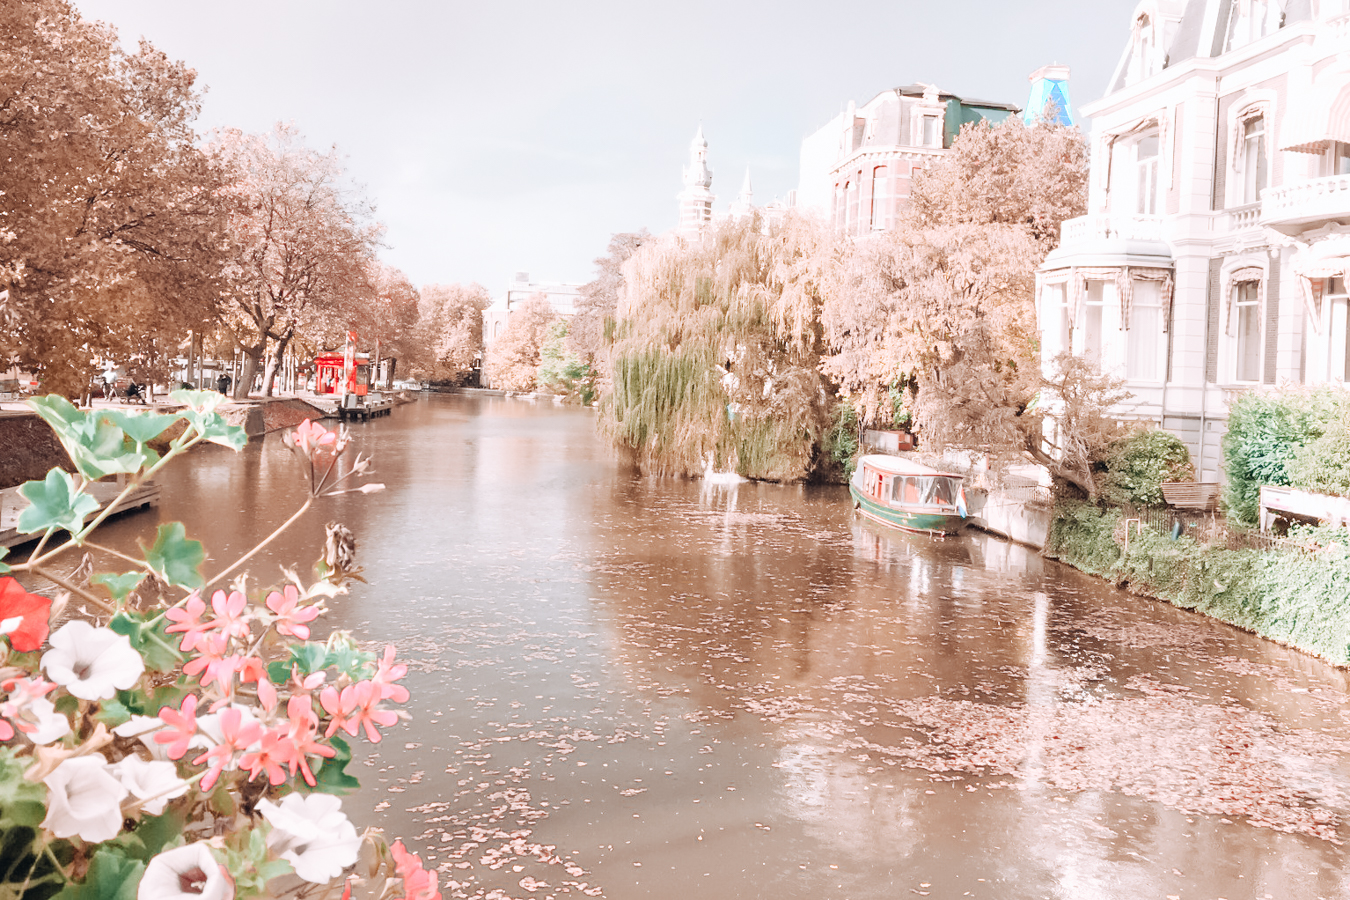 Canal, flowers, and buildings in Amsterdam